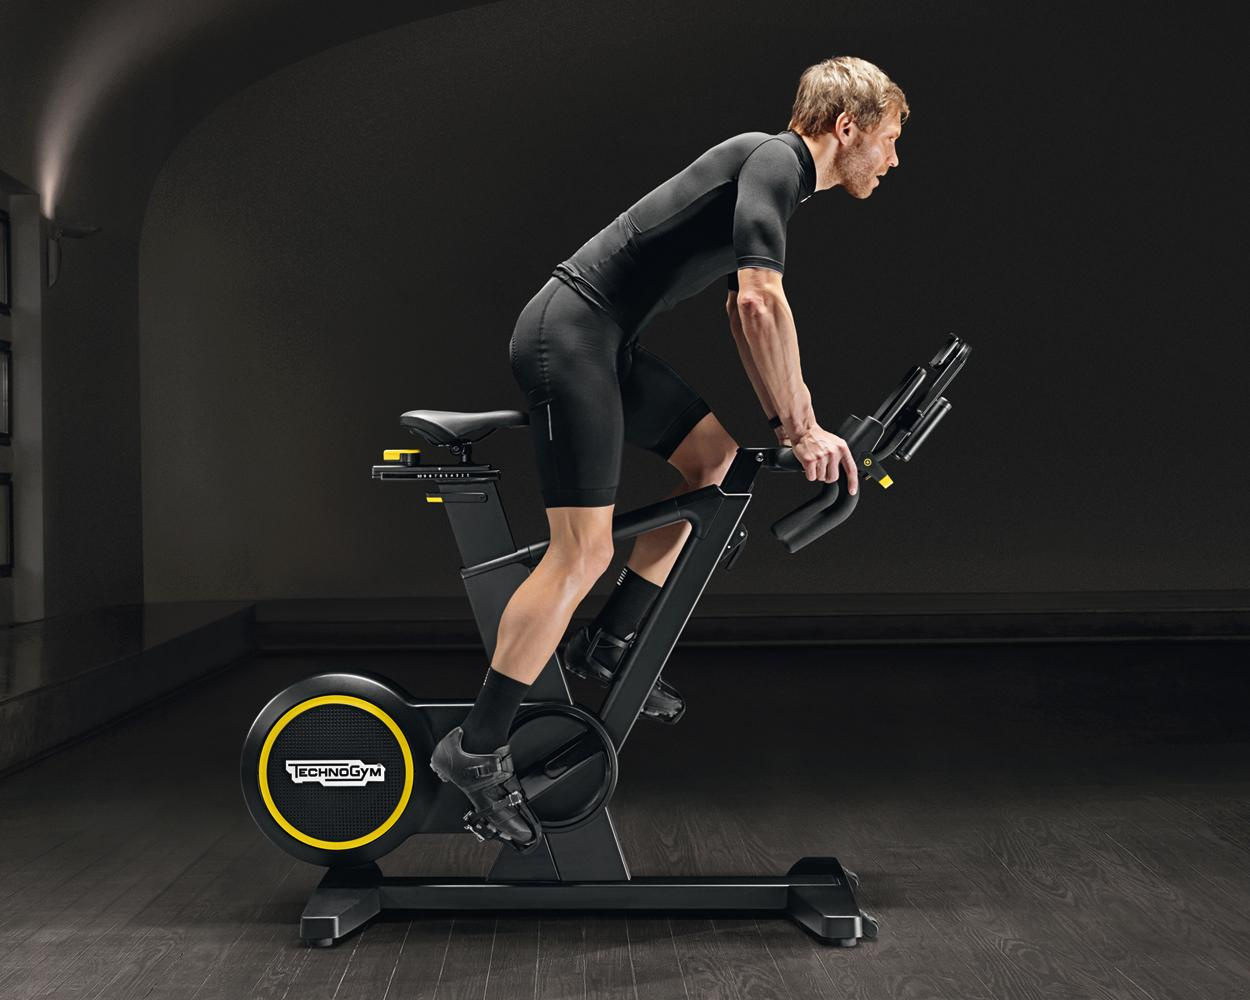 The SkillBike is designed to replicate the experience of outdoor cycling